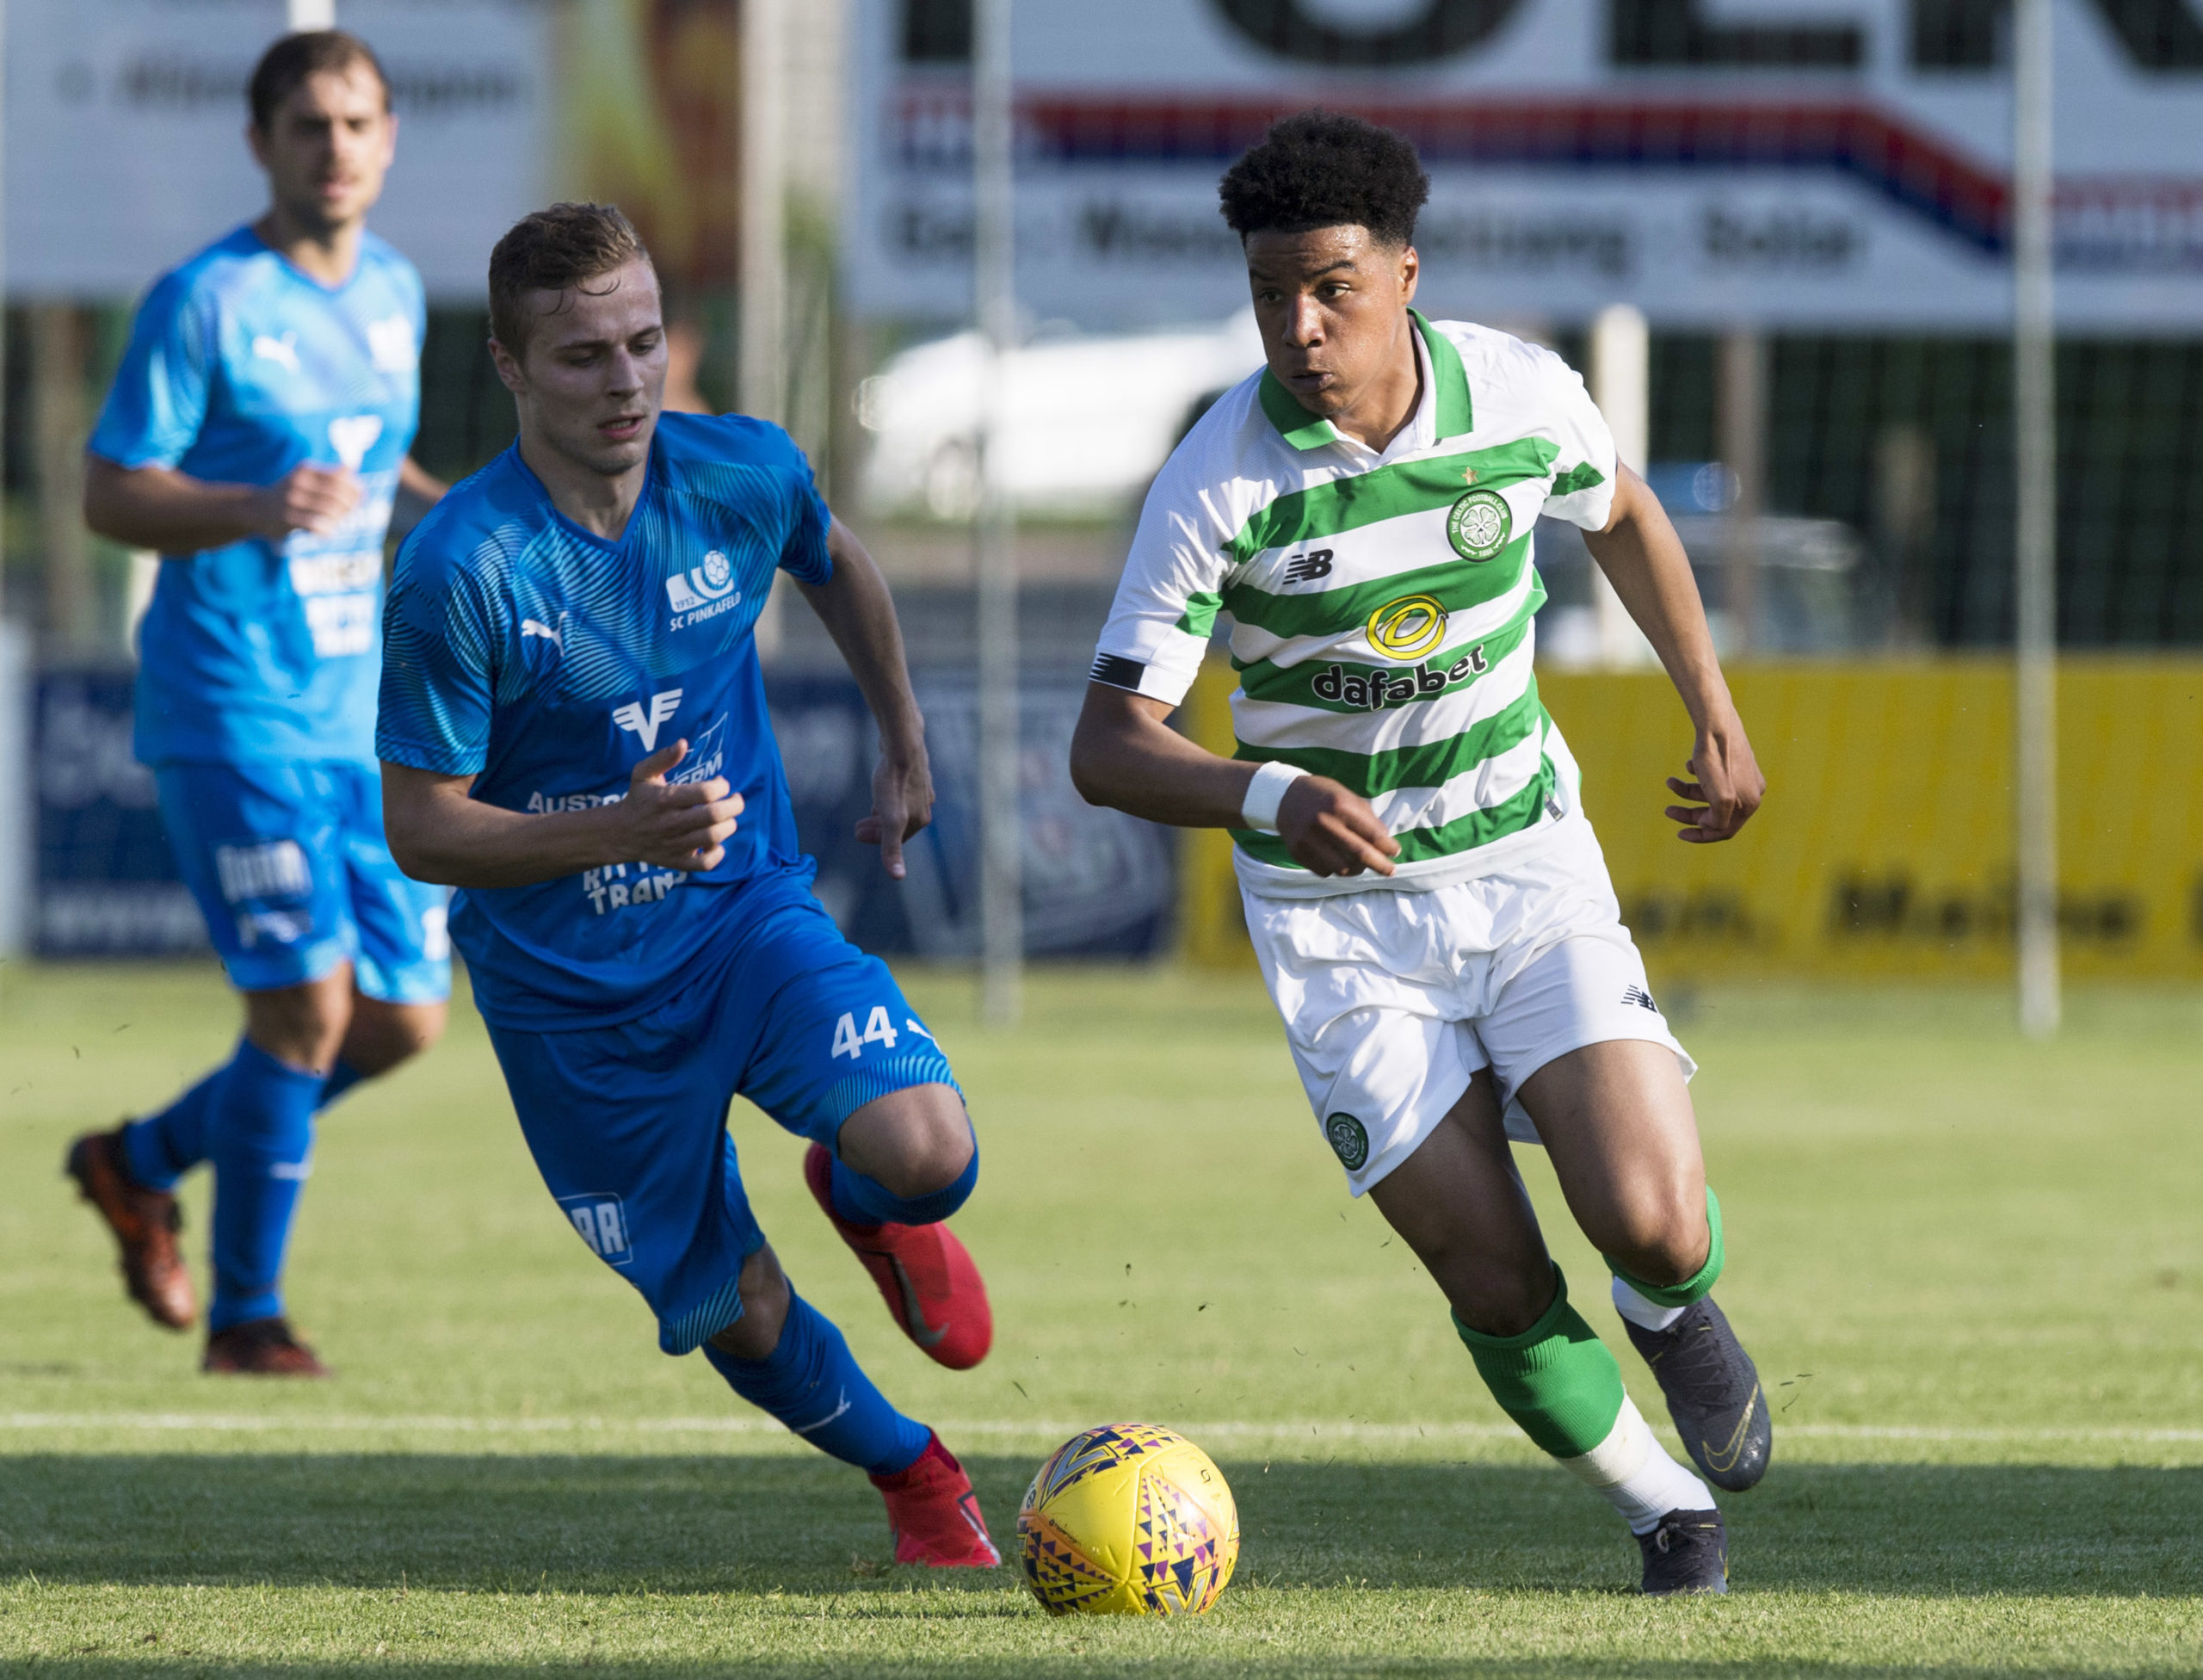 Time for an update on Celtic youngster's contract after Karamoko Dembele clarification - opinion